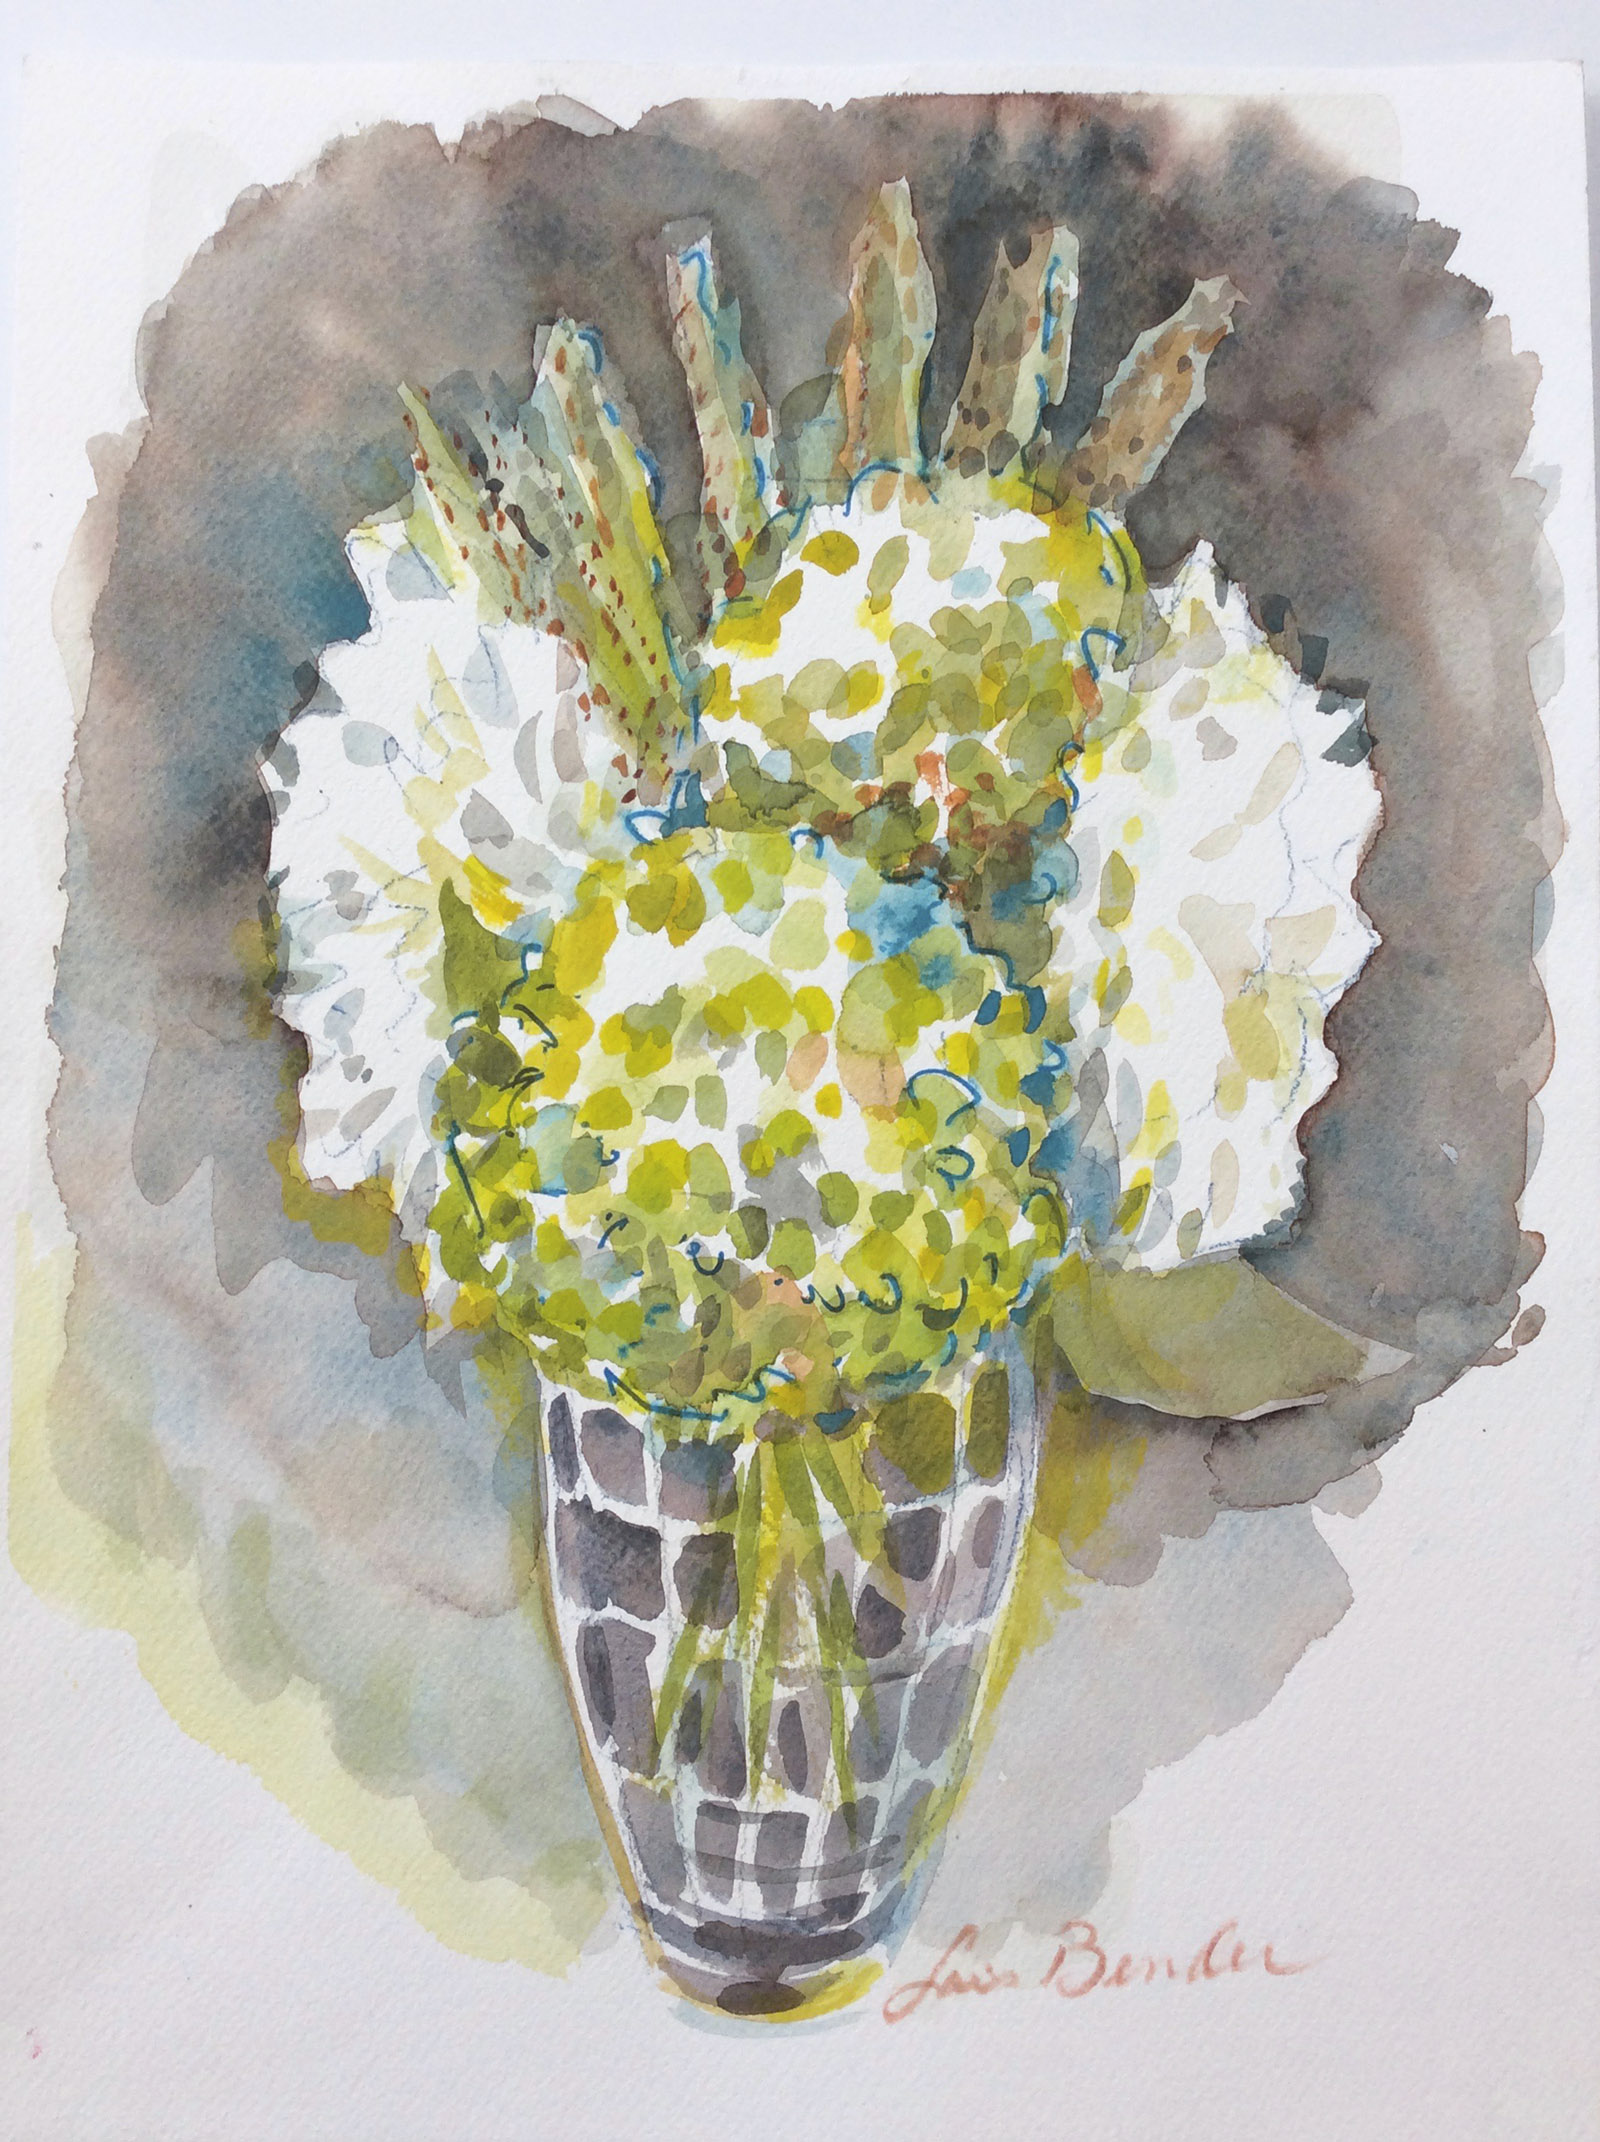 Light Green Hydrangeas and Dahlias... Green emerging out of gray winters